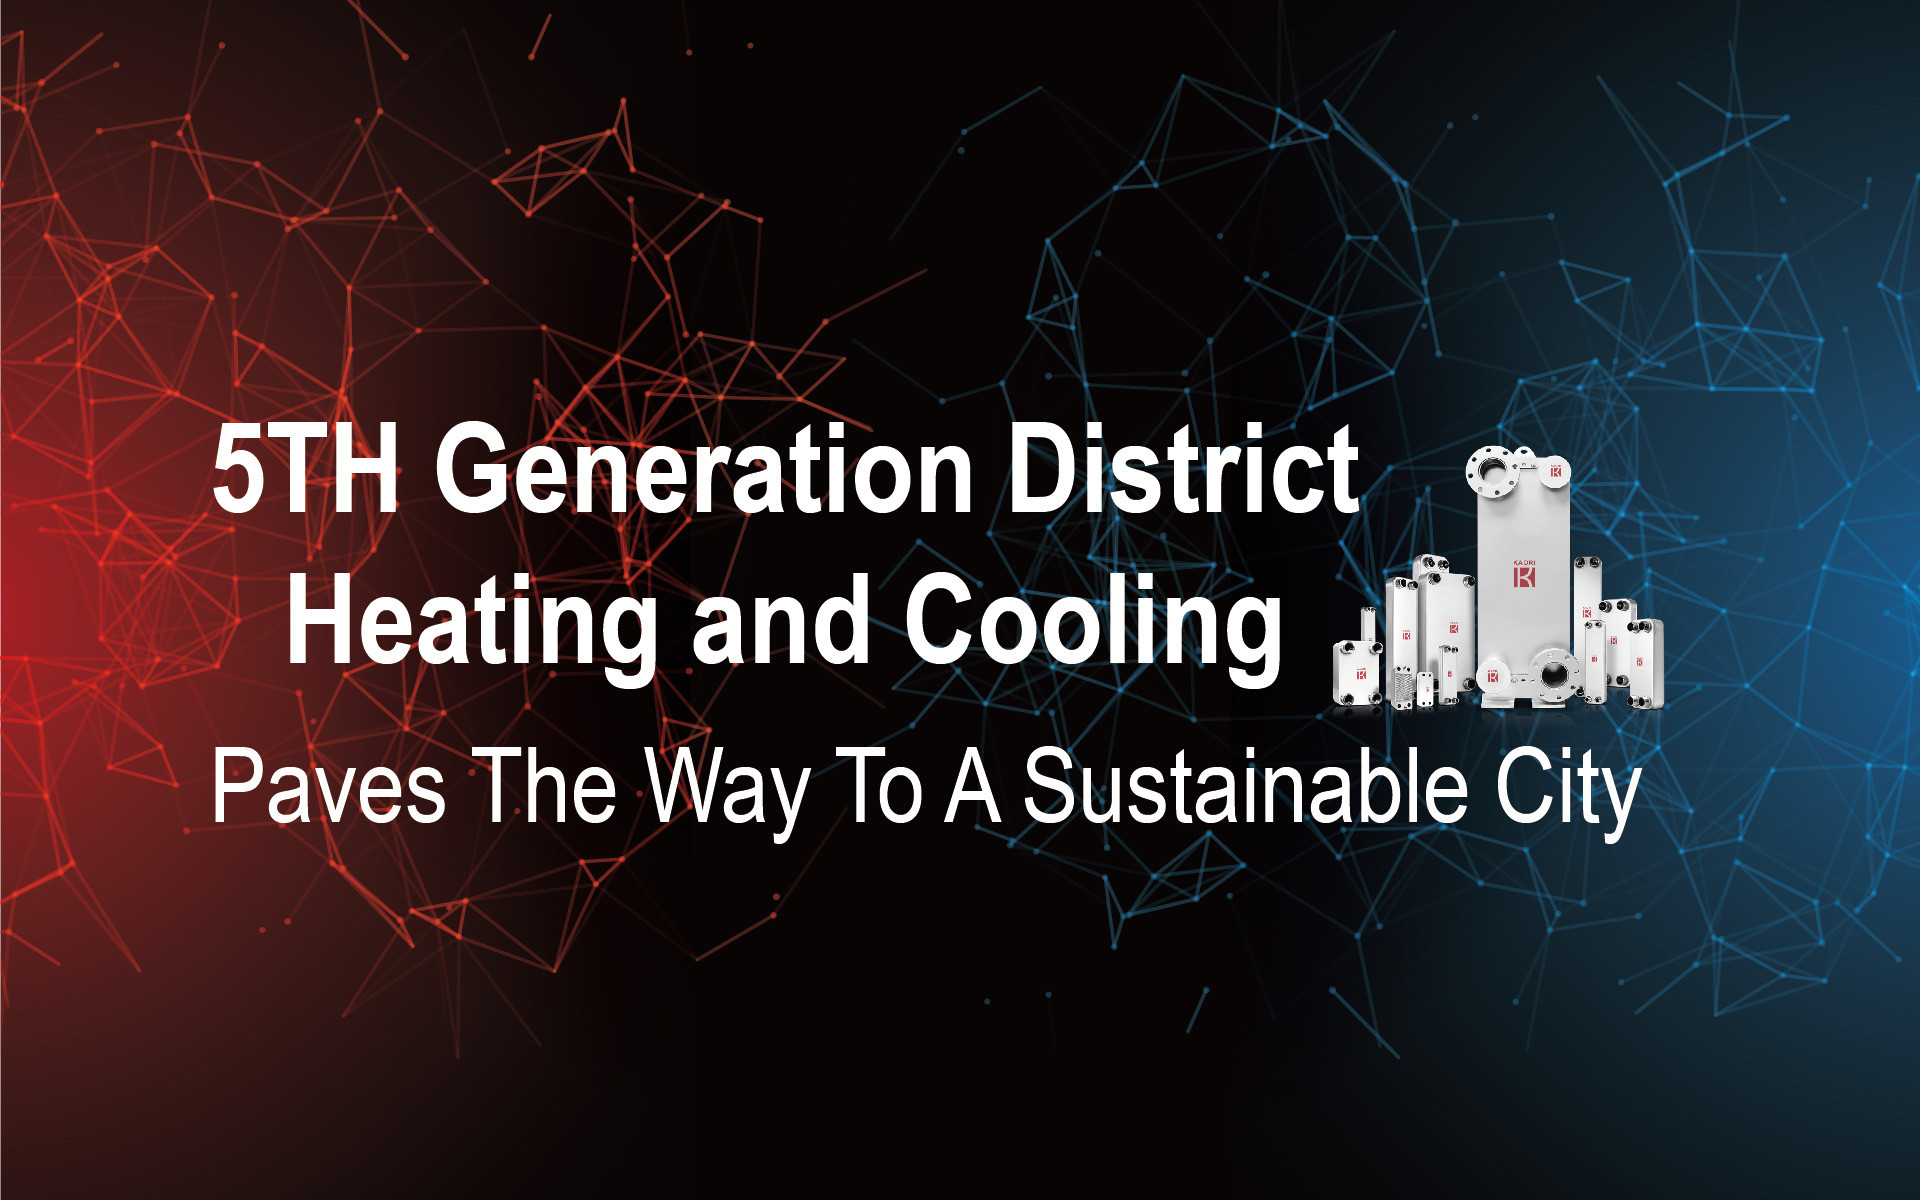 5TH Generation District Heating and Cooling (5GDHC) | Sustainable City Solution